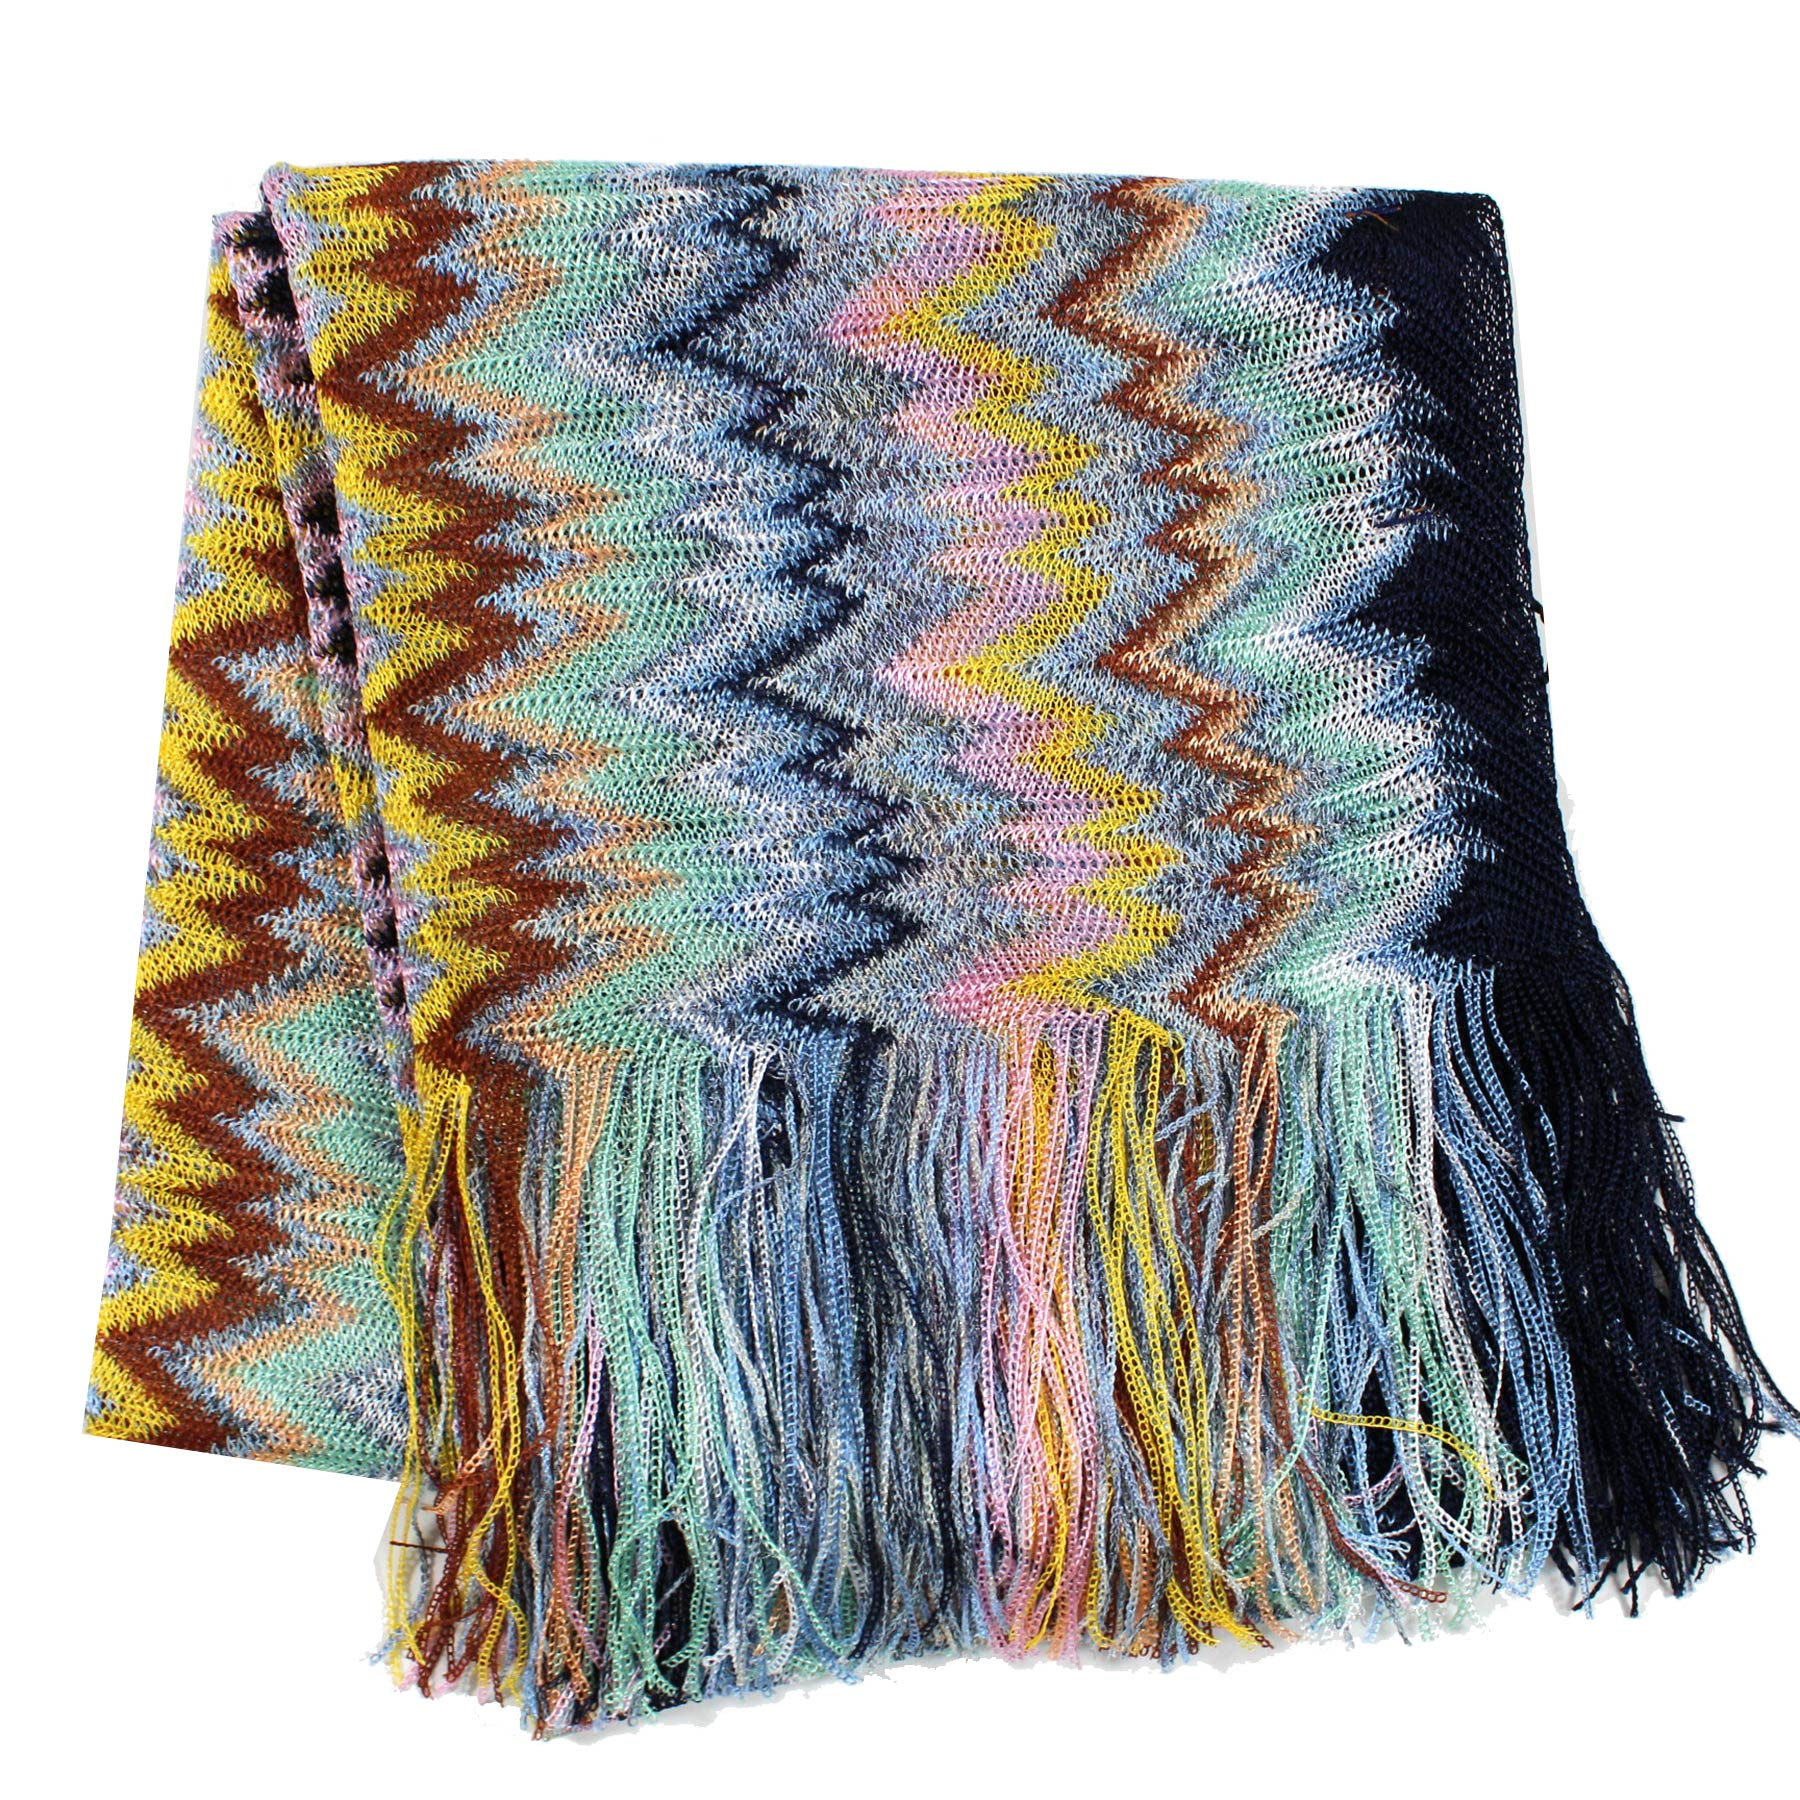 71fcf0a6f08b4 ... Women Designer Shawl · Missoni Scarf Mint Blue Yellow Pink Zigzag